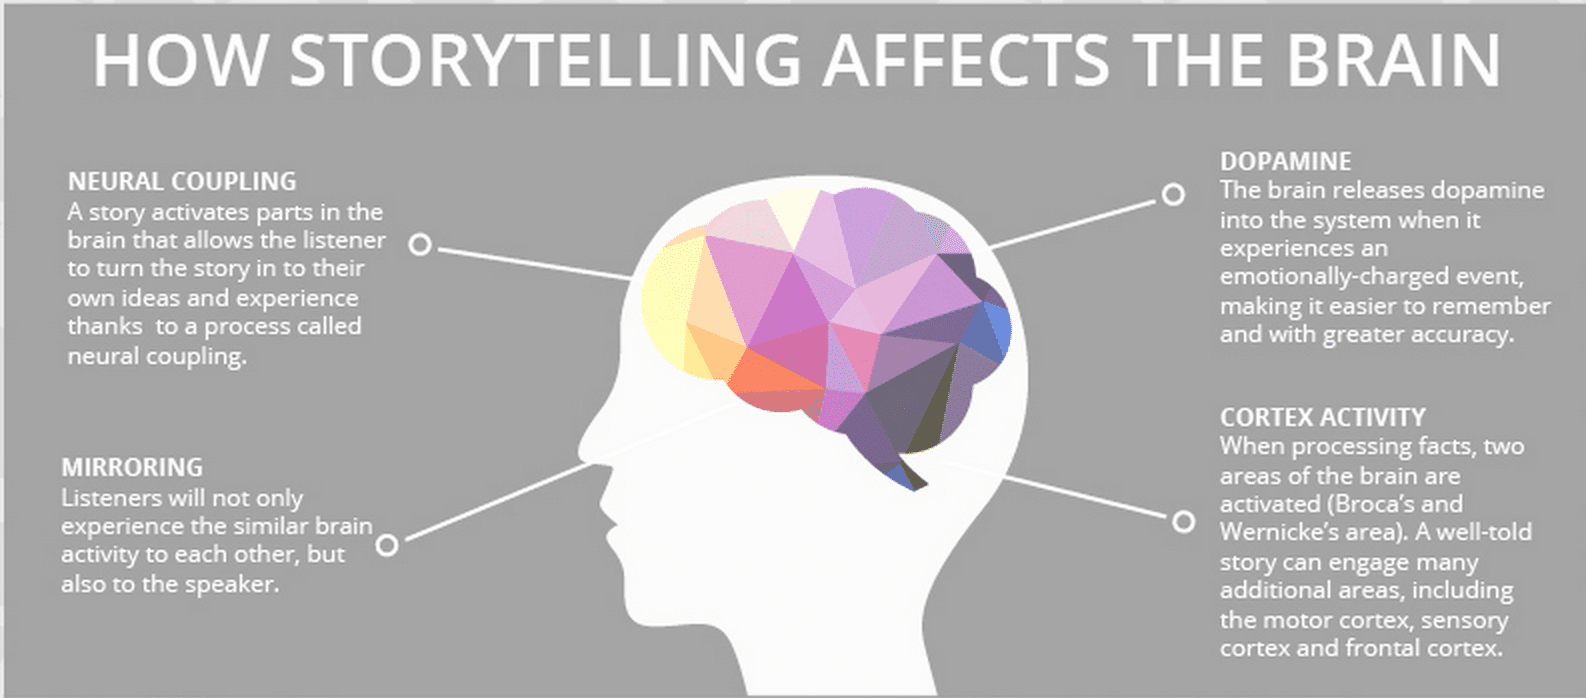 How Storytelling affects the brain